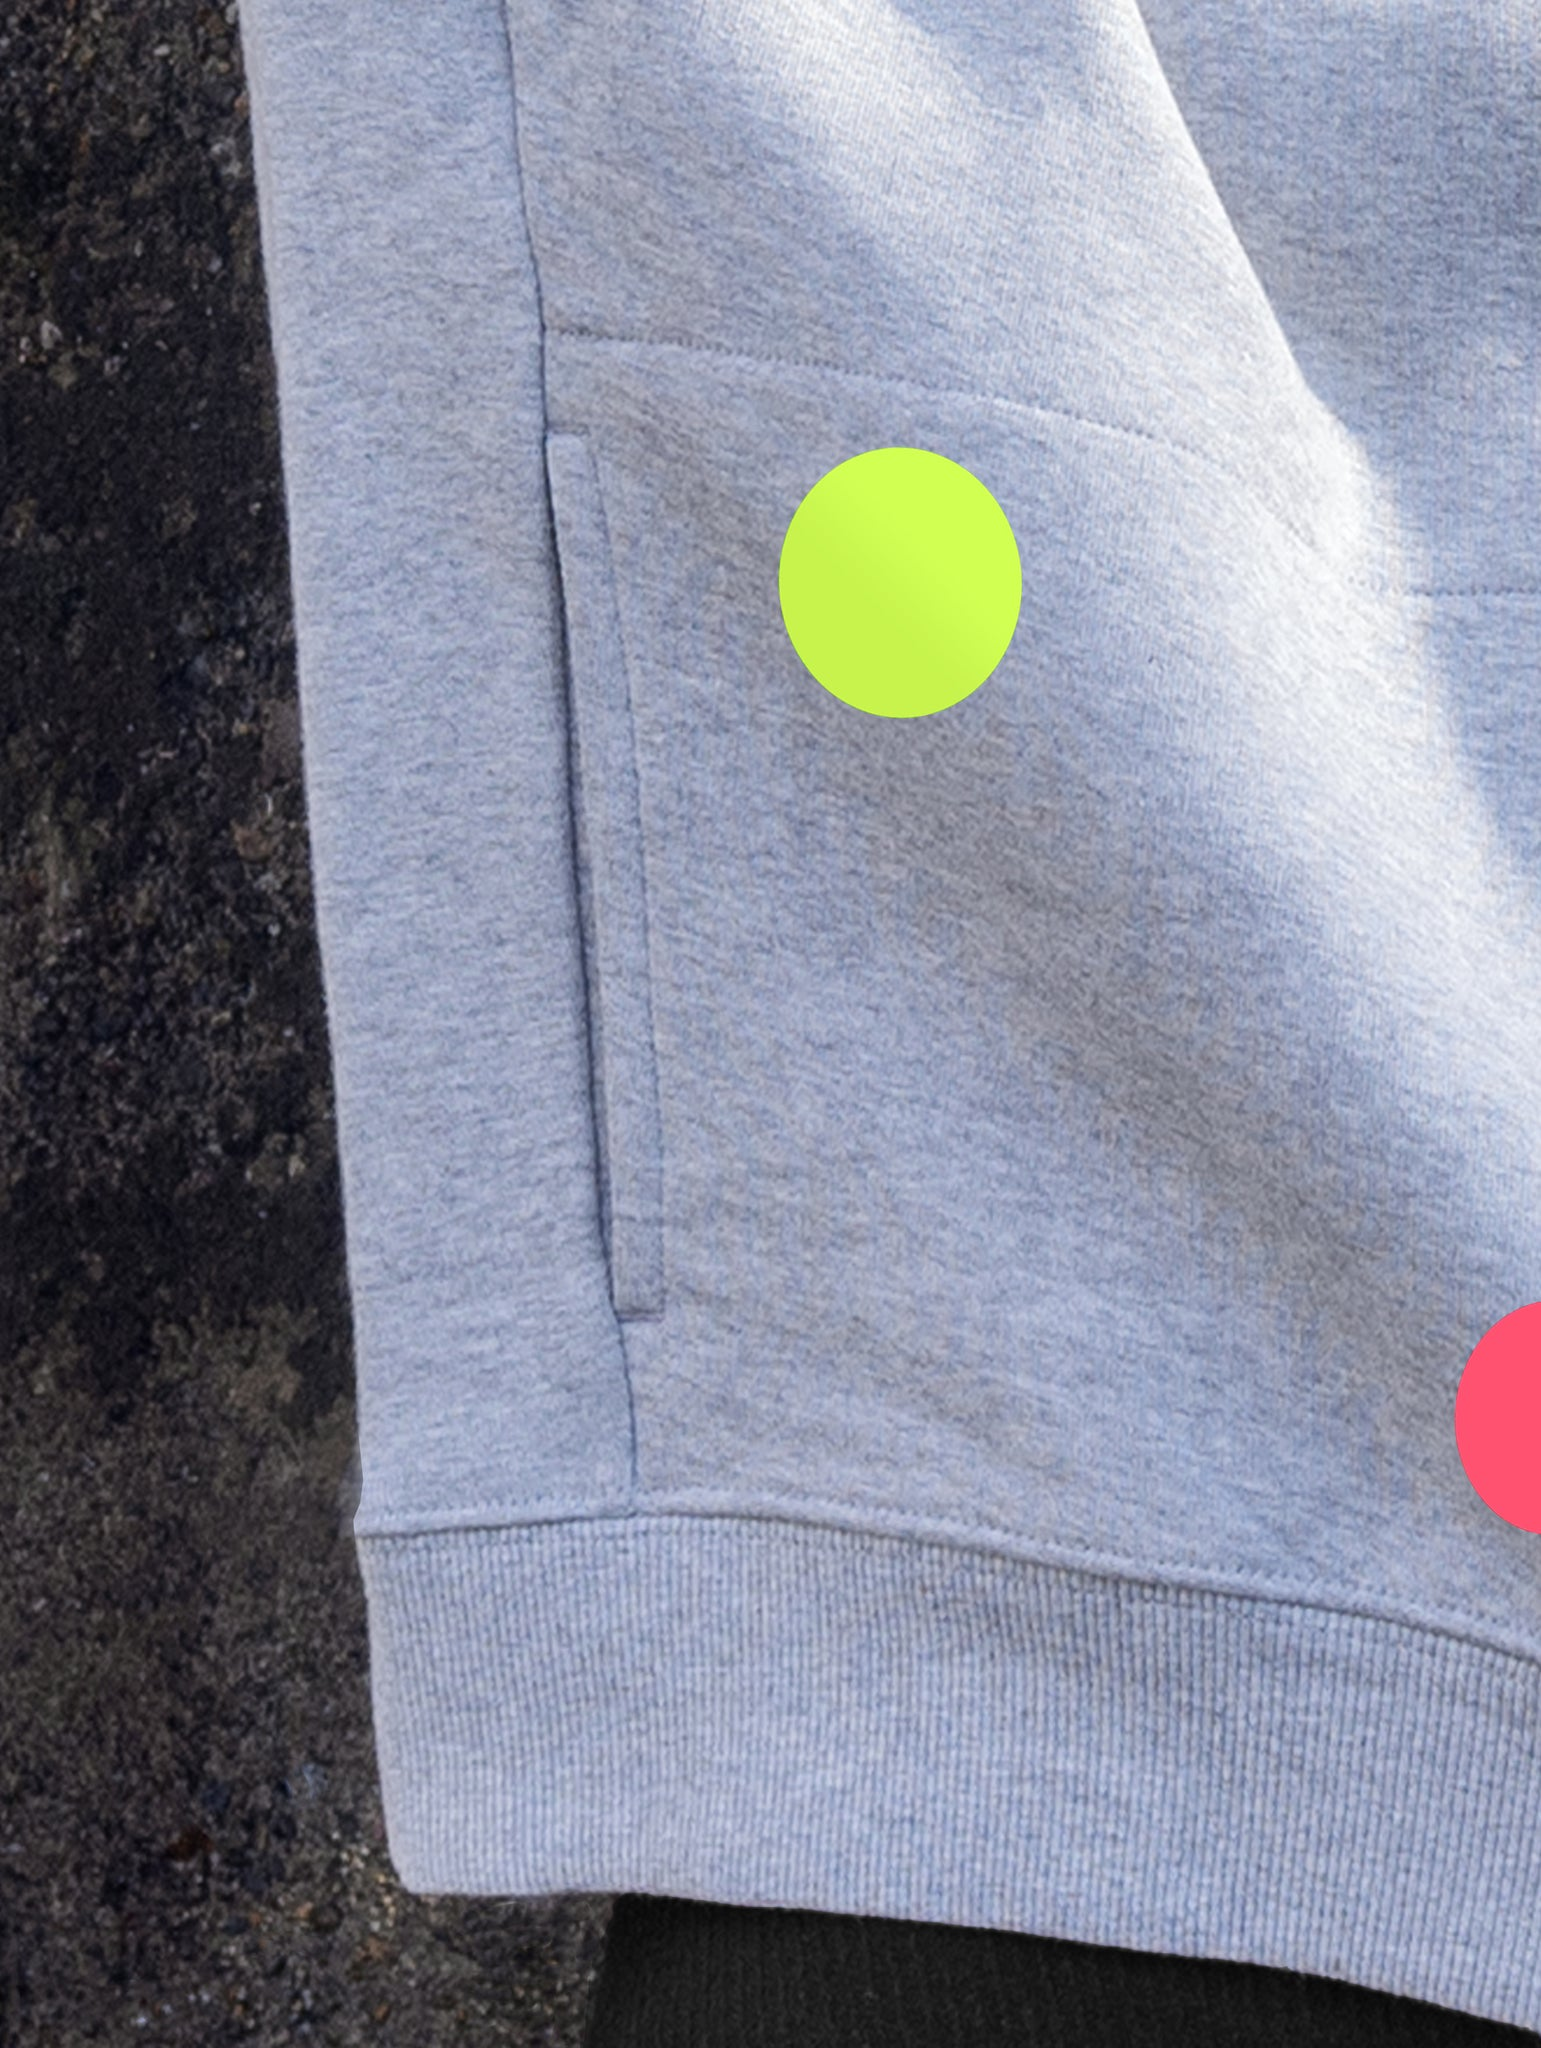 DANDY STAR NEO DOT SWEATSHIRT MARL GREY OR NAVY